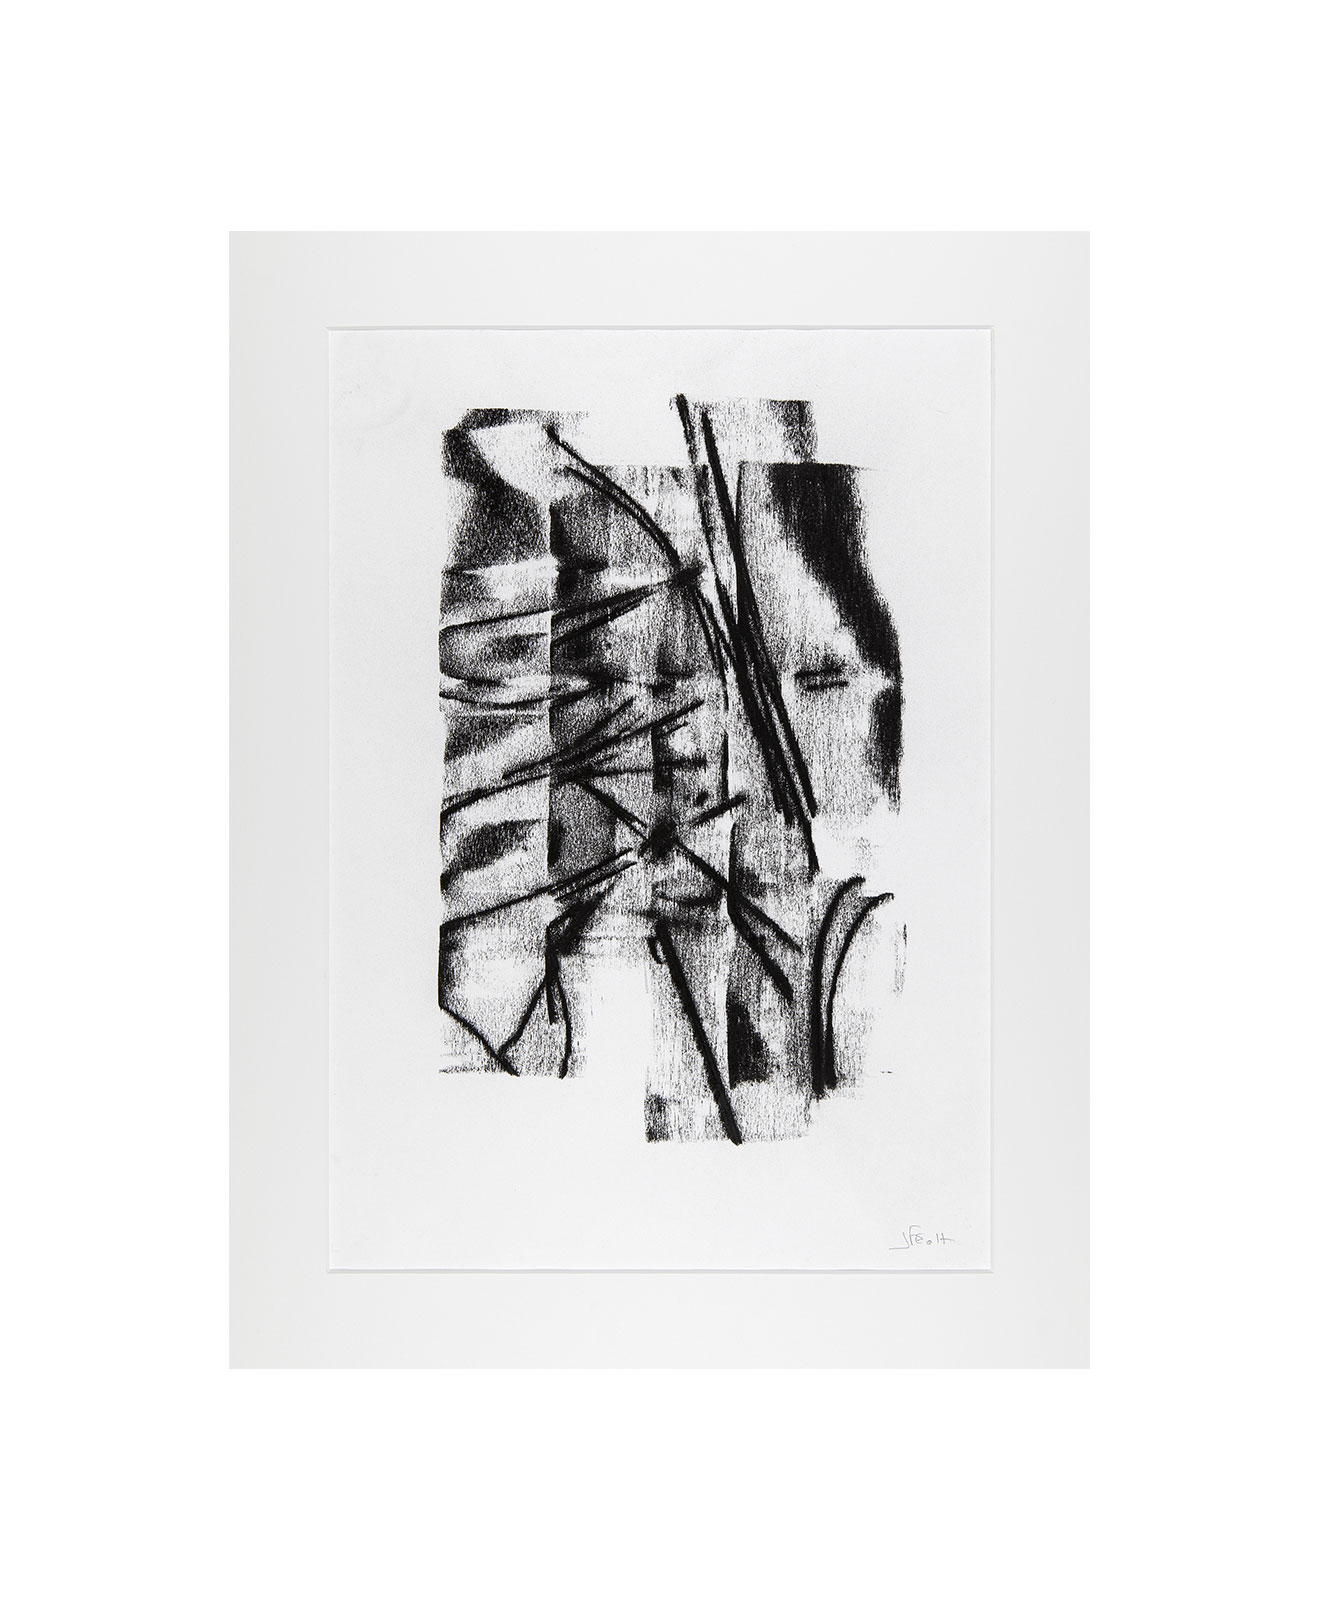 Cha 1.14, Charcoal on paper, black and white artwork, drawing, jf escande, contemporary art